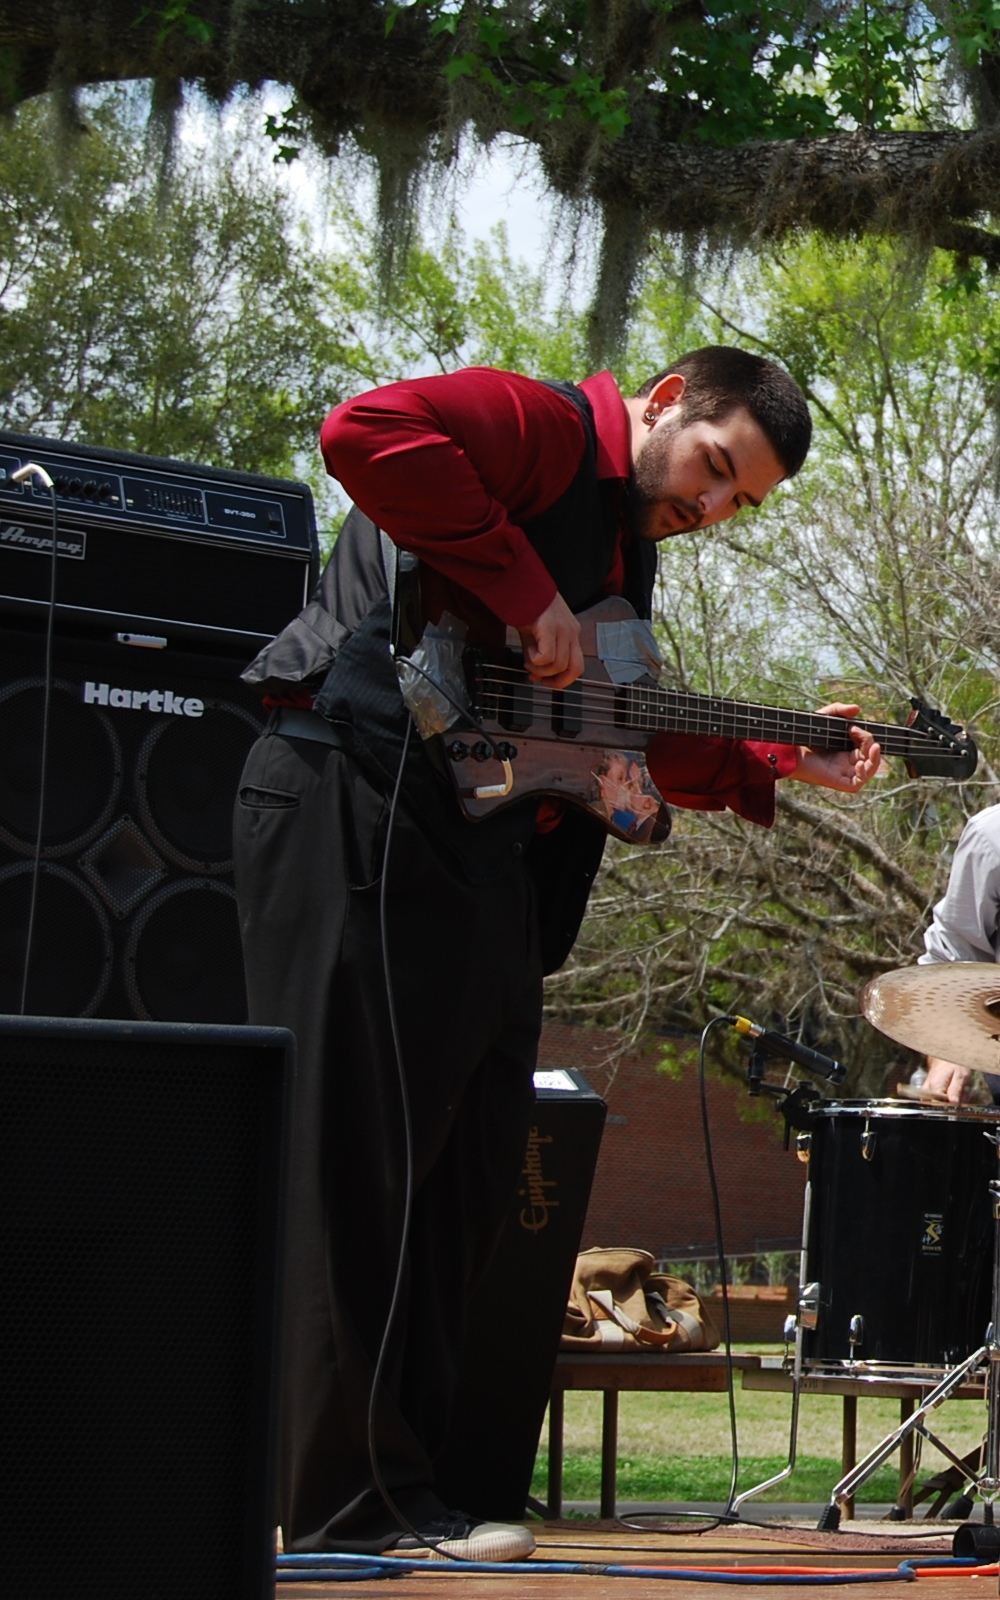 Japanese Club Spring Festival at University of Florida (photo by Gonzalo Escarate. Kelly Tran on guitar)